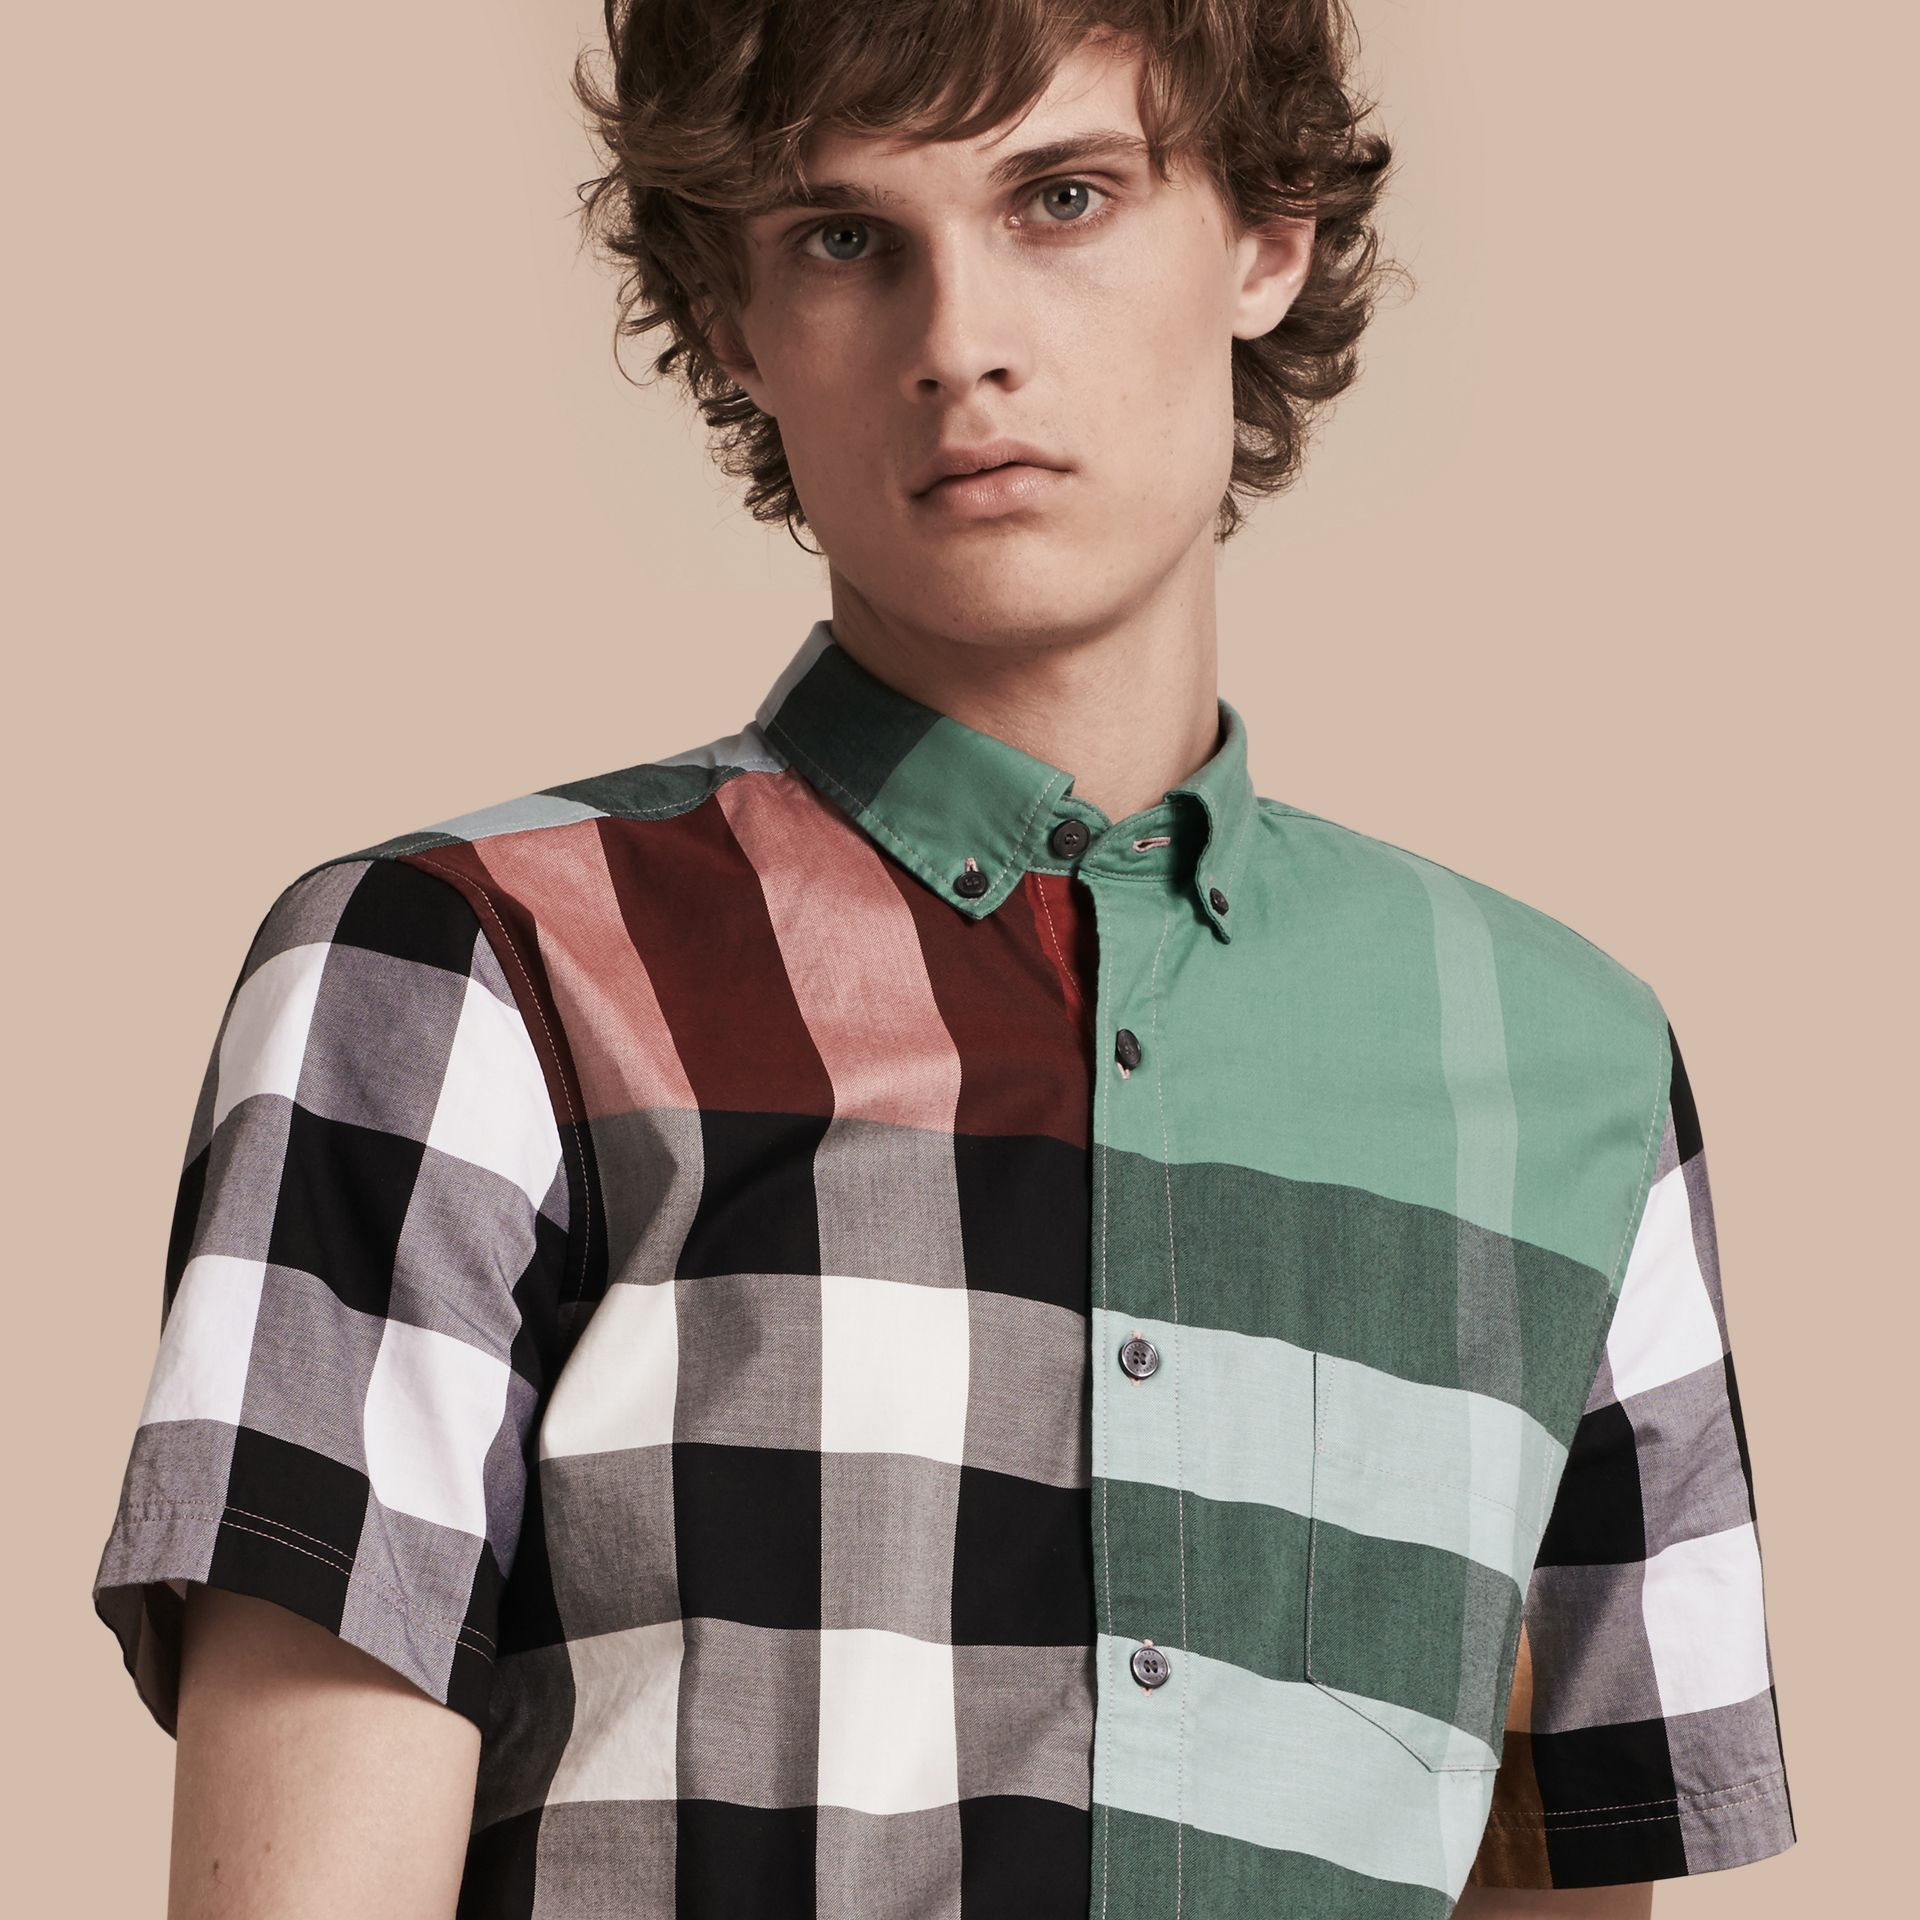 Parade red Short-sleeved Colour Block Check Cotton Shirt Parade Red - gallery image 1